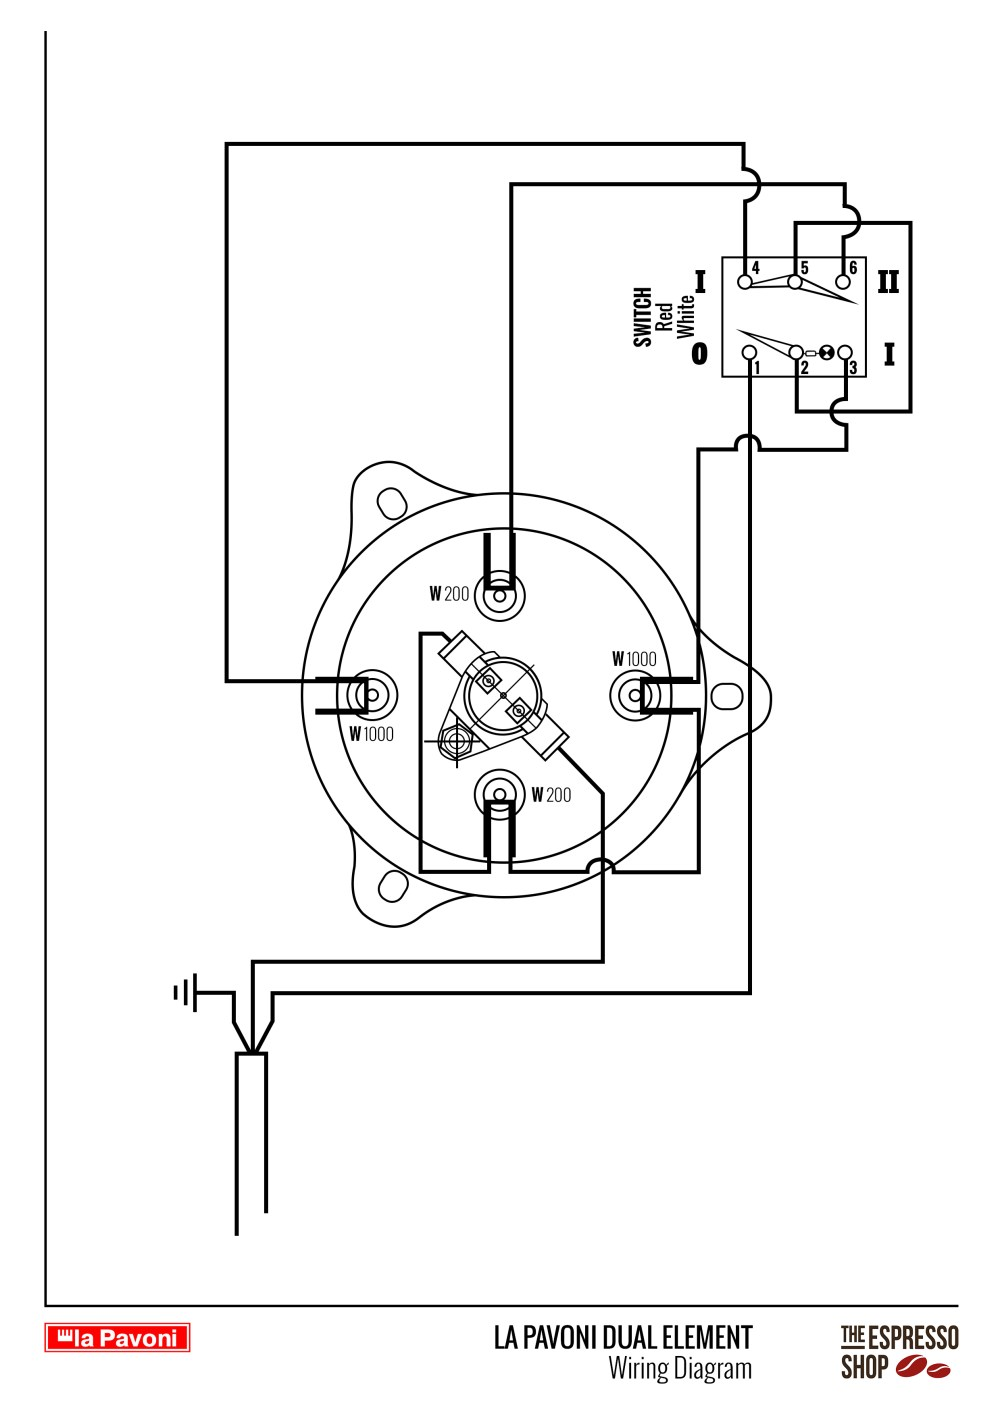 medium resolution of la pavoni dual element